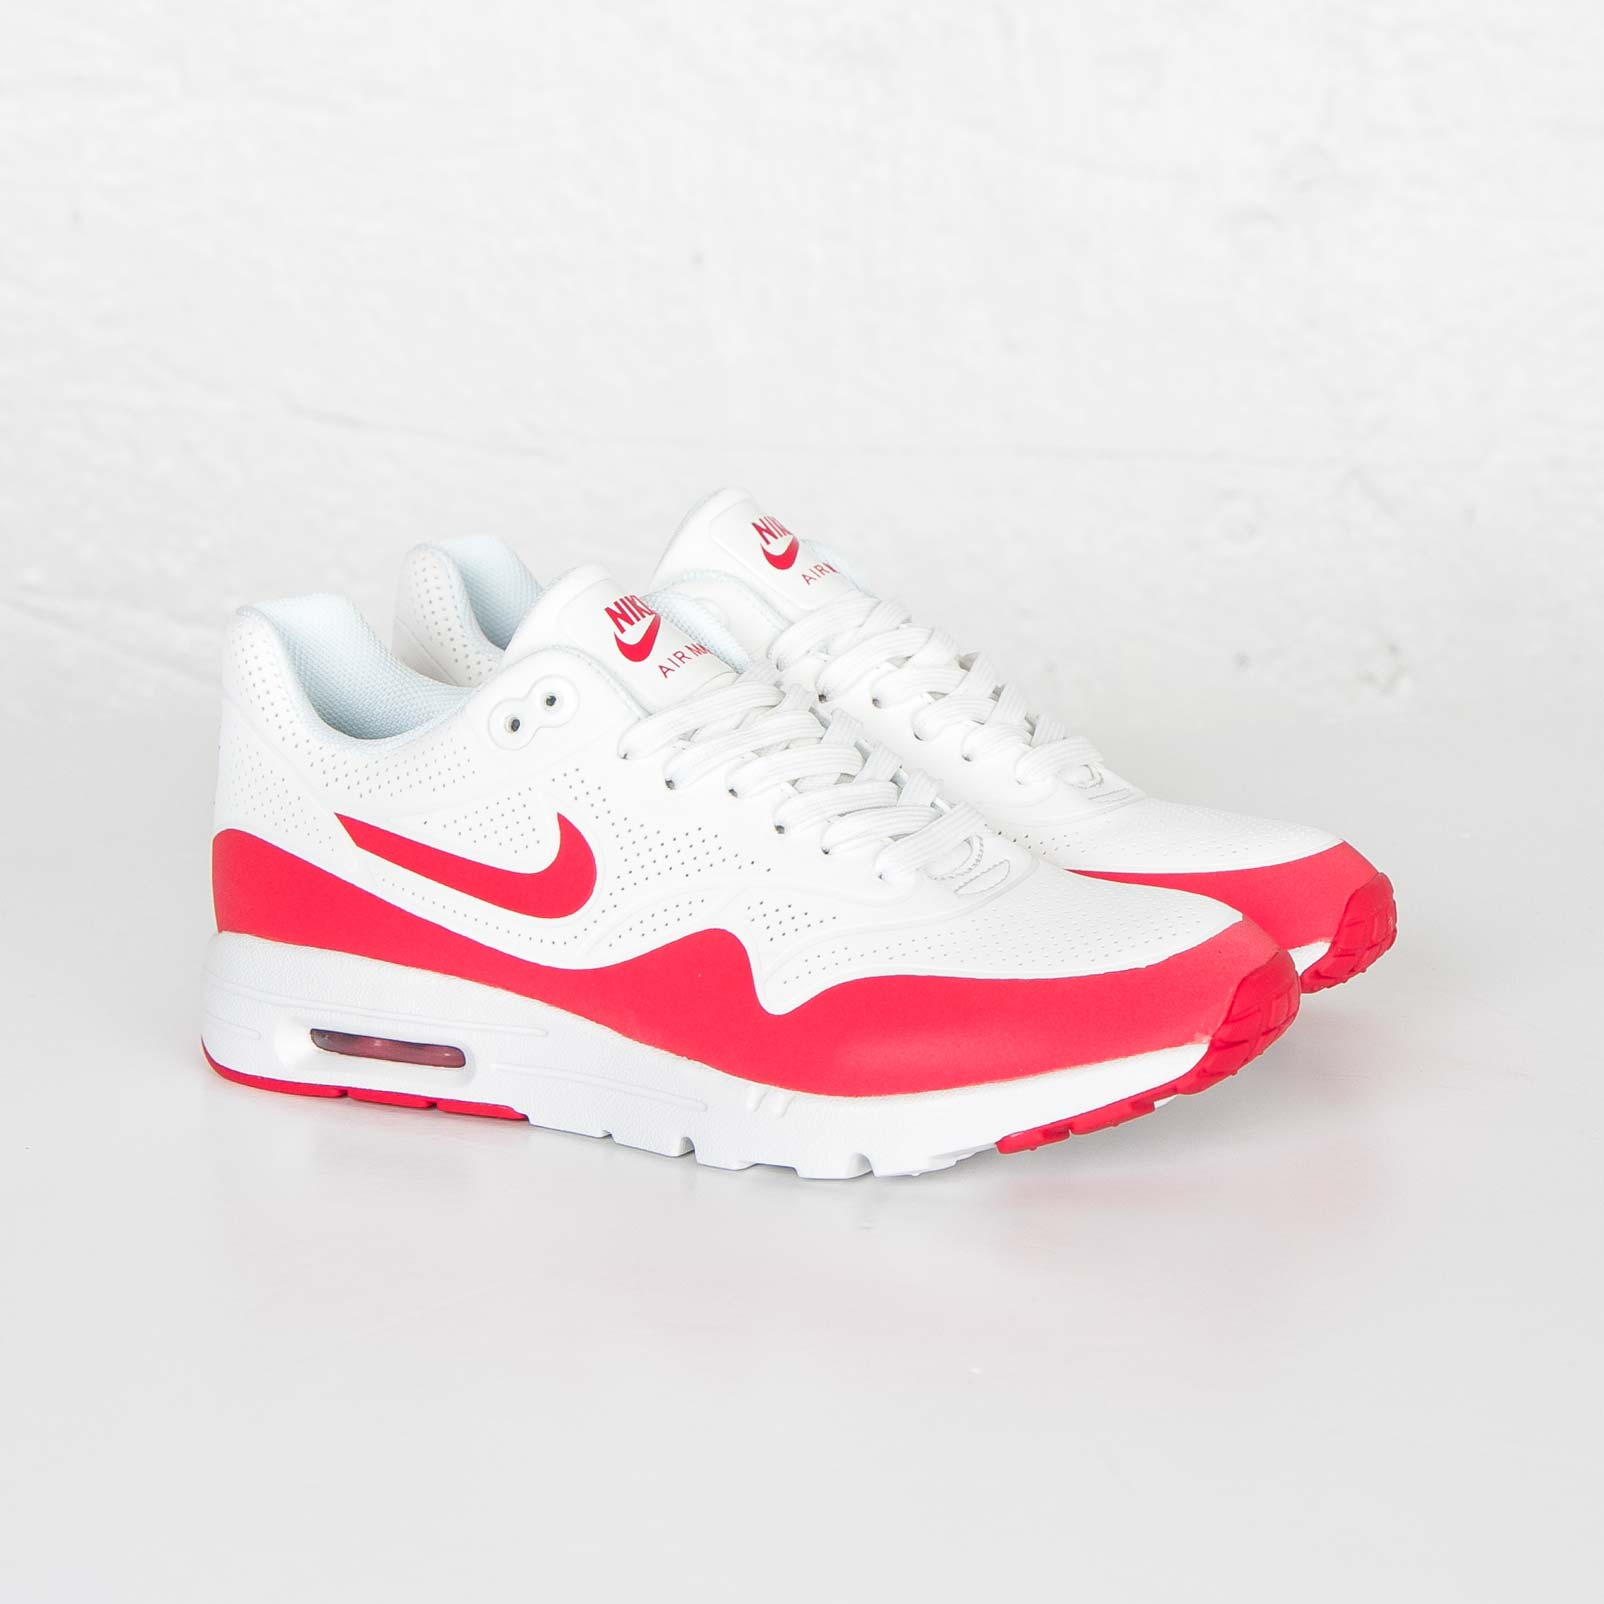 2c852eed3f48 Nike Womens Air Max 1 Ultra Moire University Red - Air 23 - Air ...